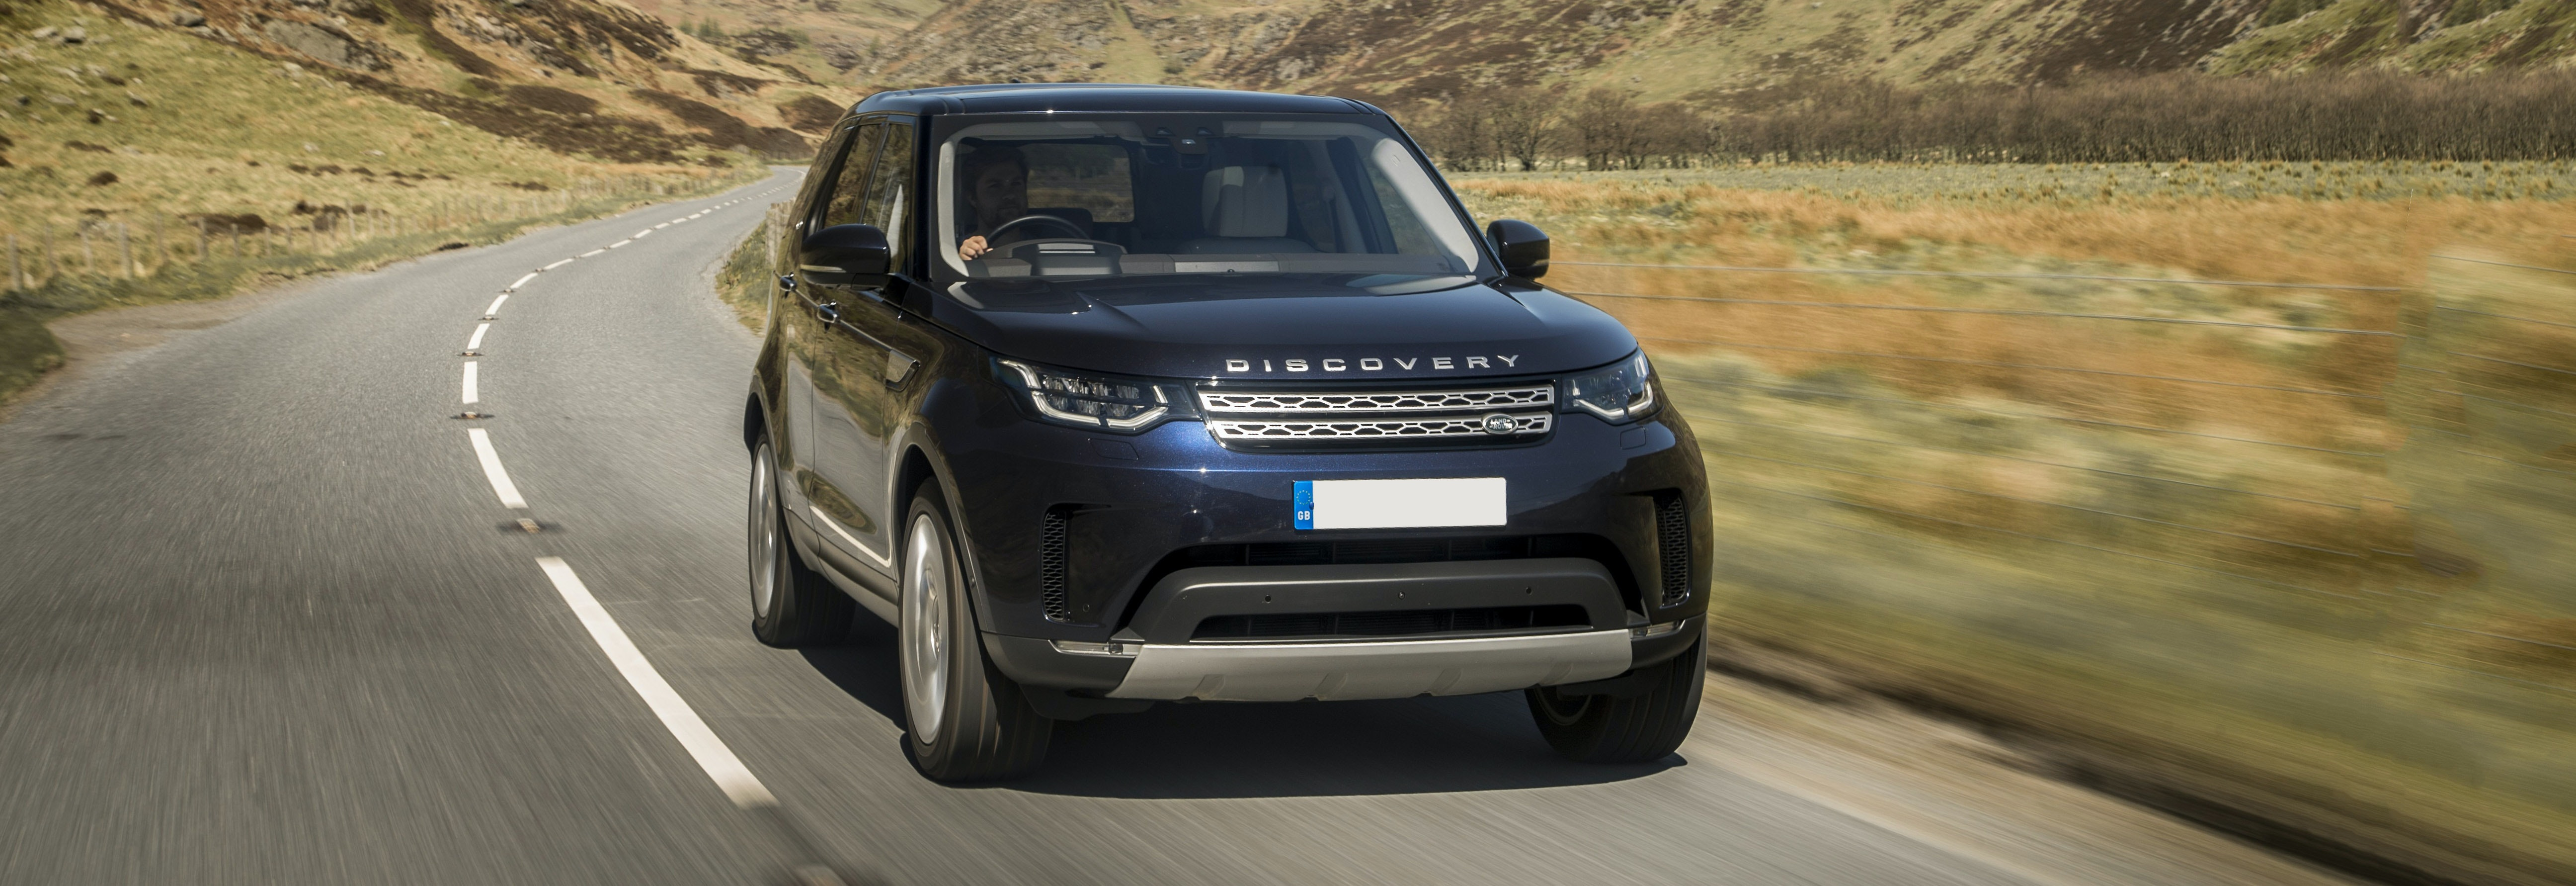 2018 land rover discovery blue driving front